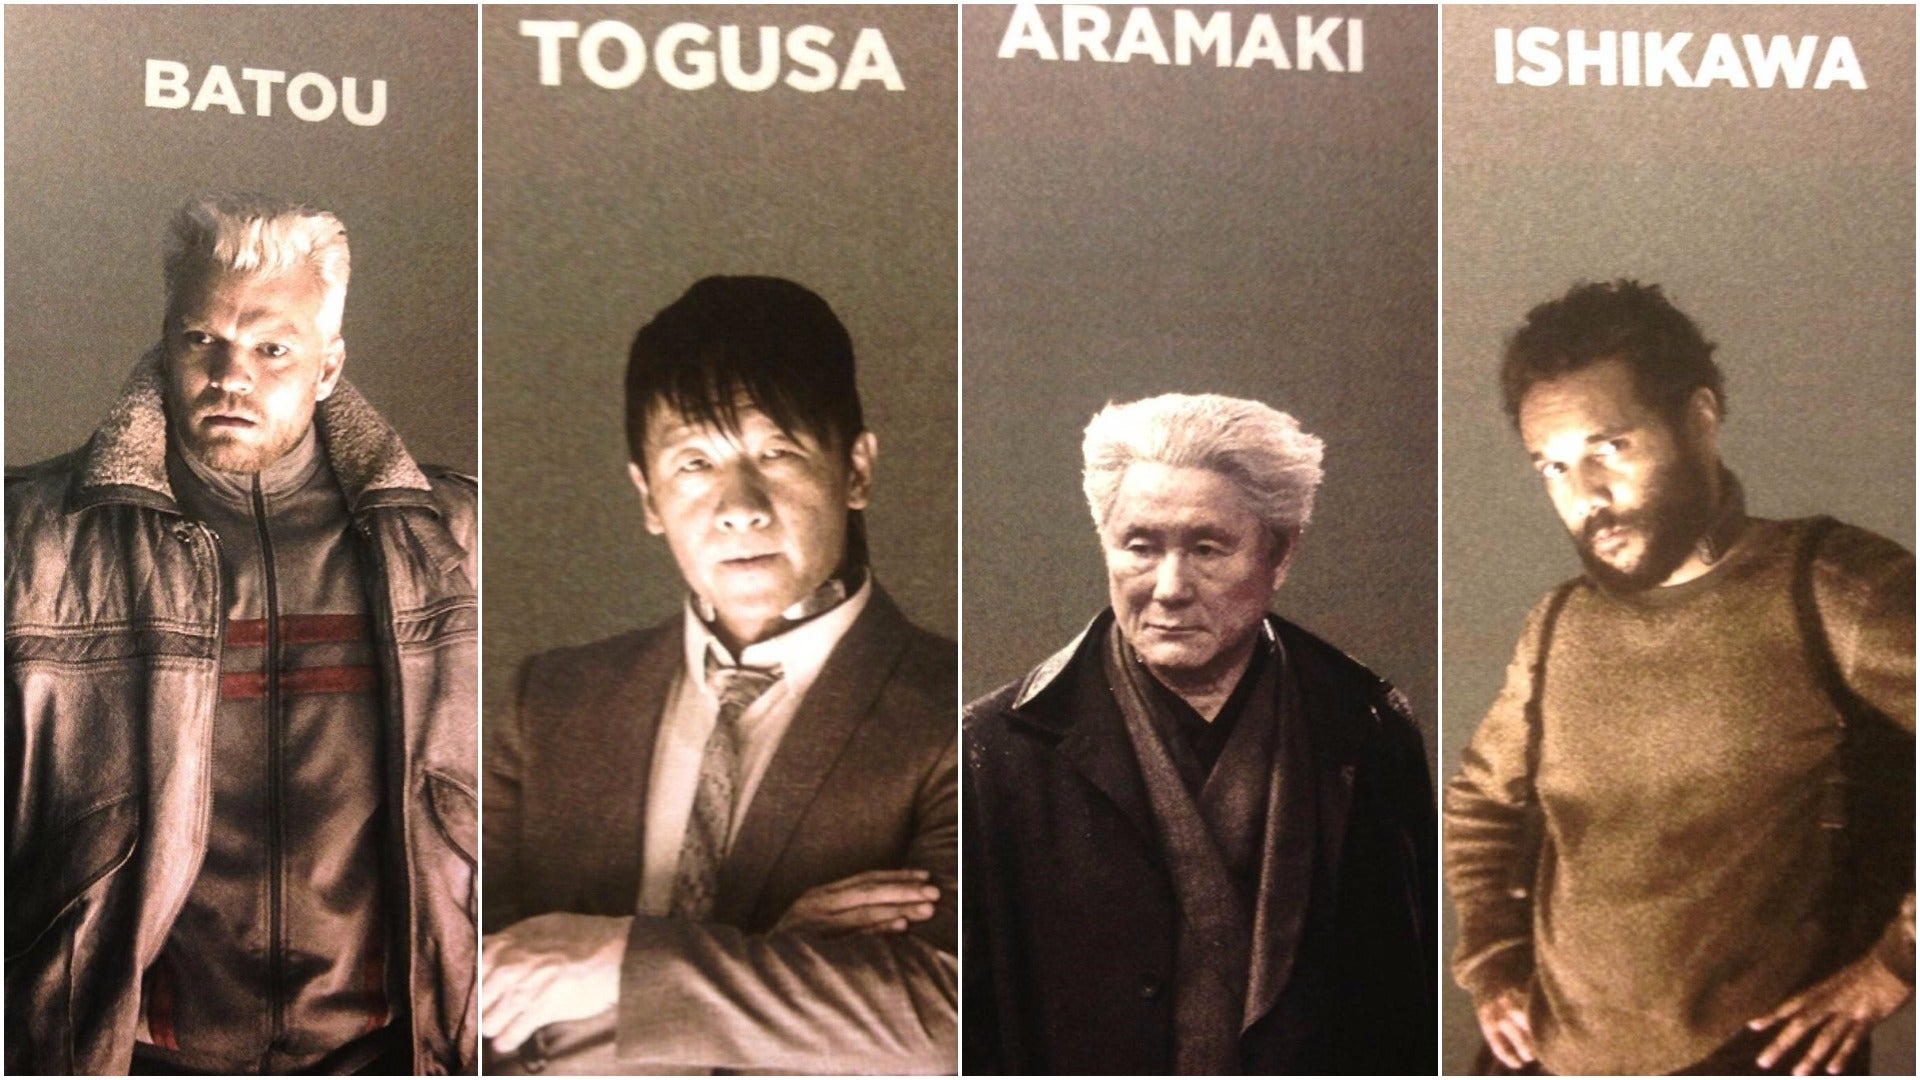 Hollywood's Ghost In The Shell Cast Photos Apparently Leaked